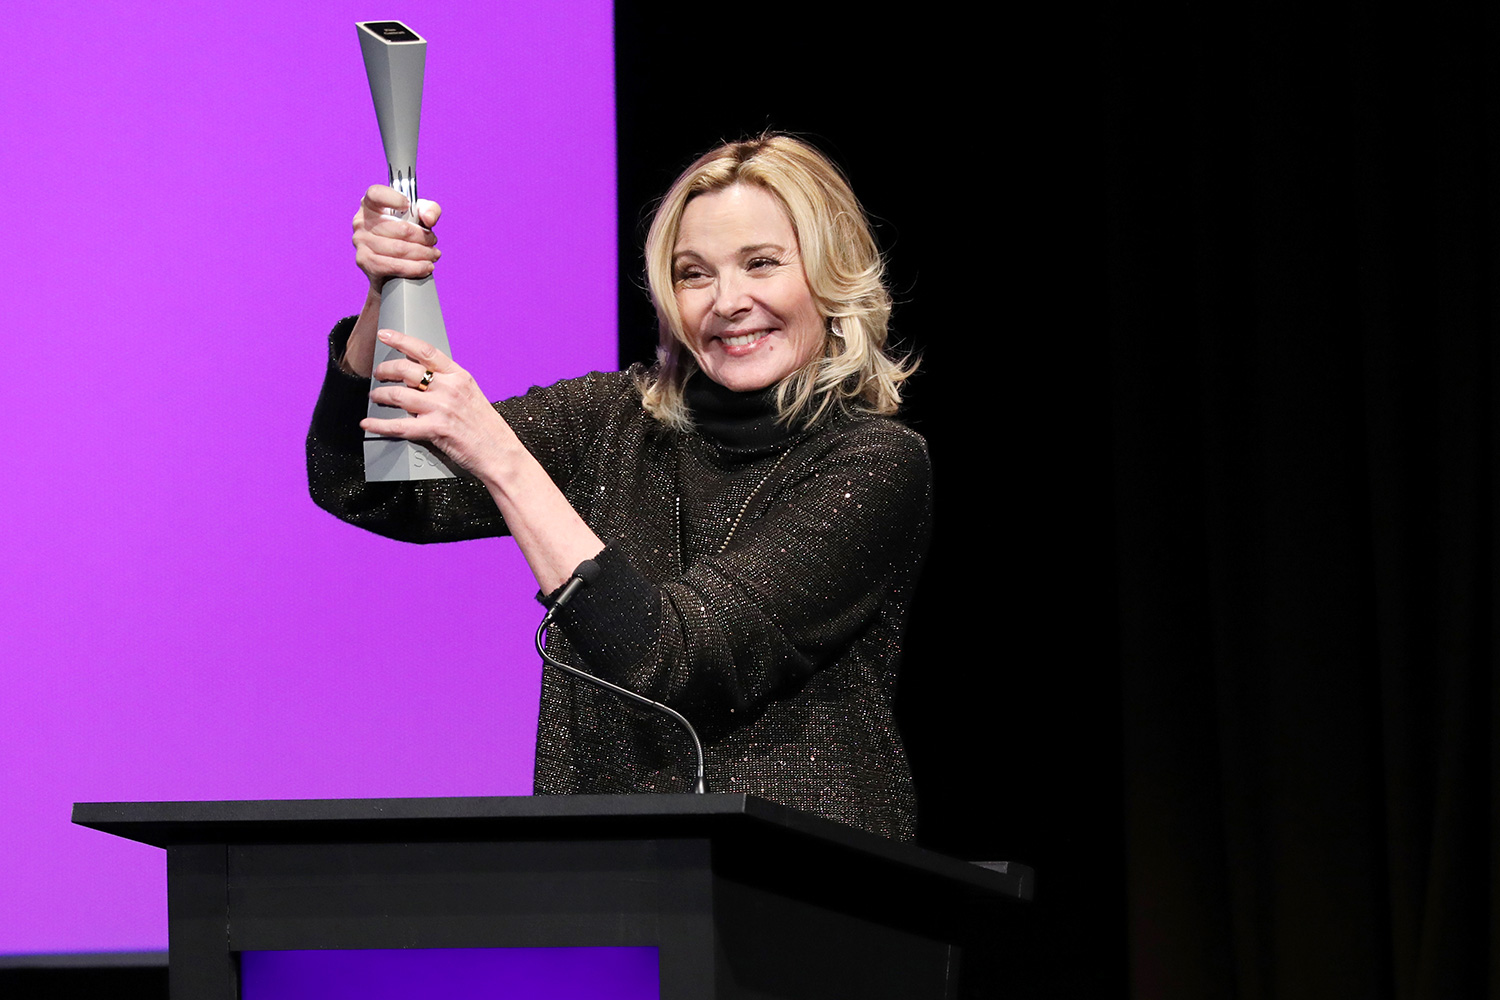 """Kim Cattrall accepts the 2020 Icon Award on stage during the SCAD aTVfest 2020 - """"Filthy Rich"""" With Kim Cattrall Icon Award Presentation on February 27, 2020 in Atlanta, Georgia"""